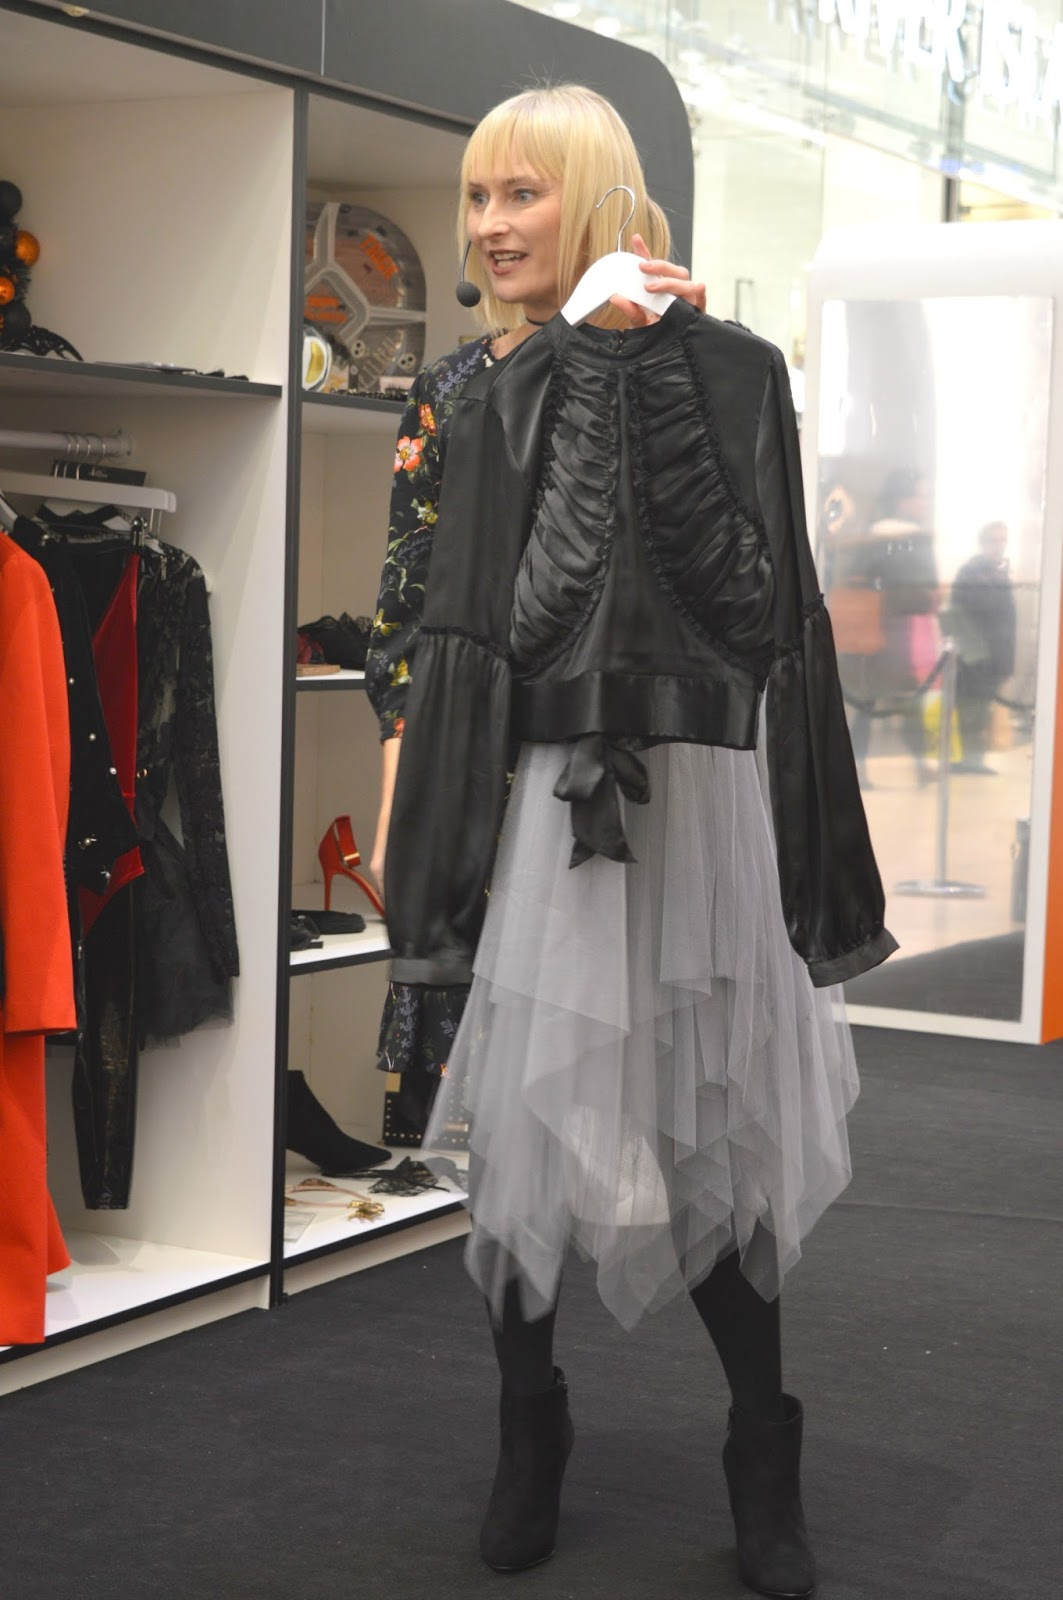 The Fashion Spooktacular Intu Eldon Square  - Stylist